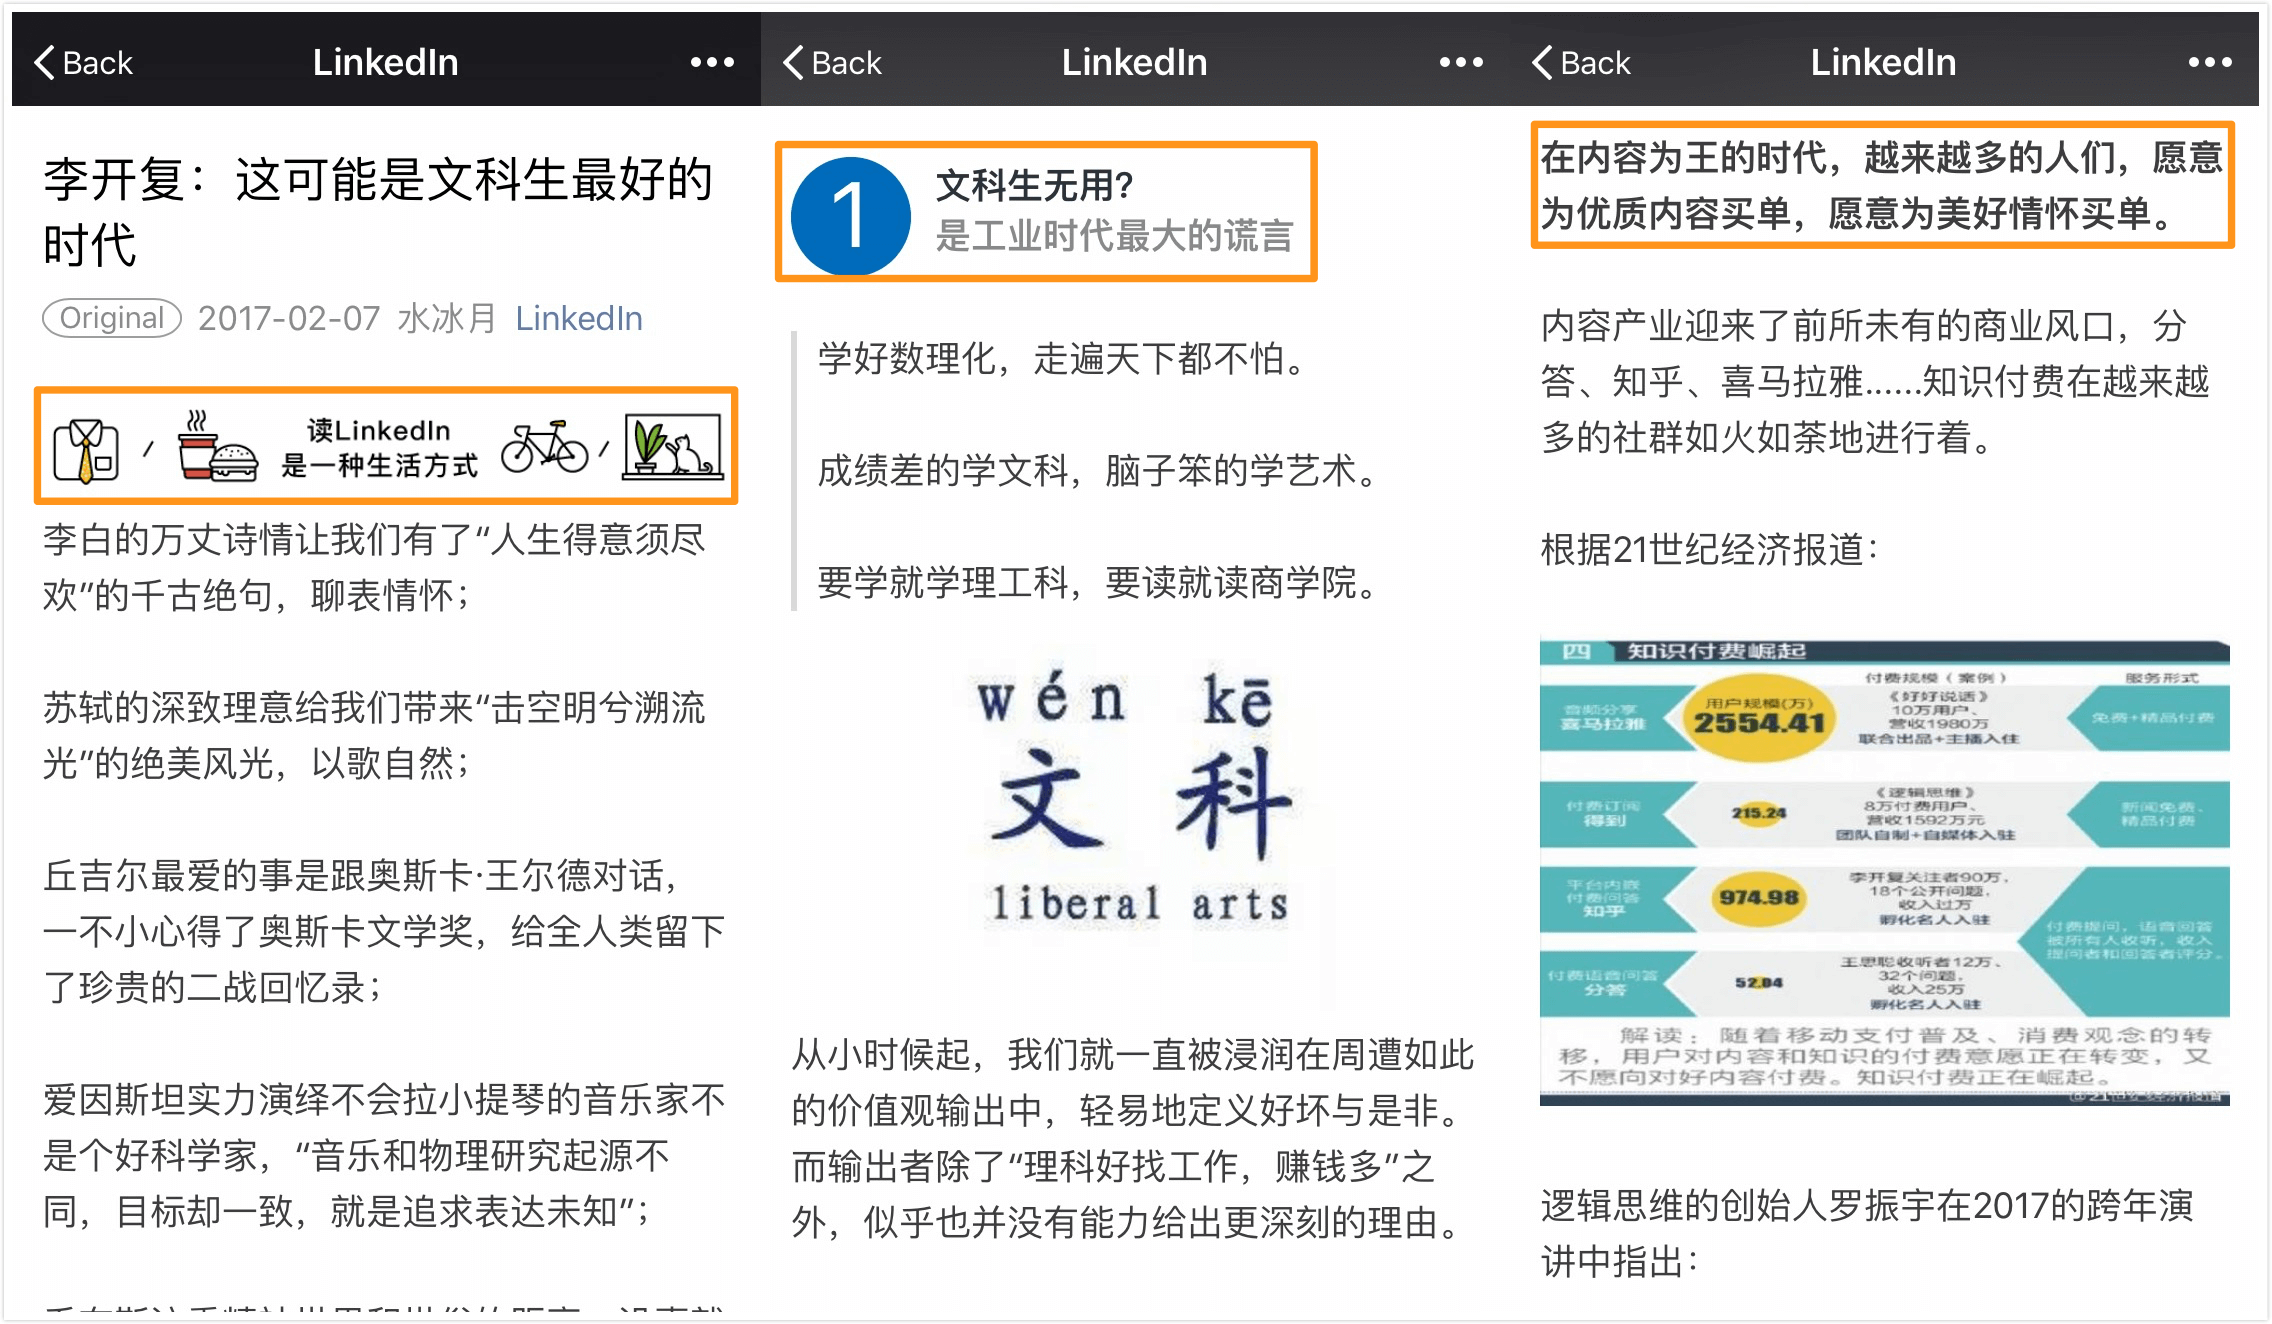 Branding on Chinese Social Media: WeChat v s Weibo - ChoZan